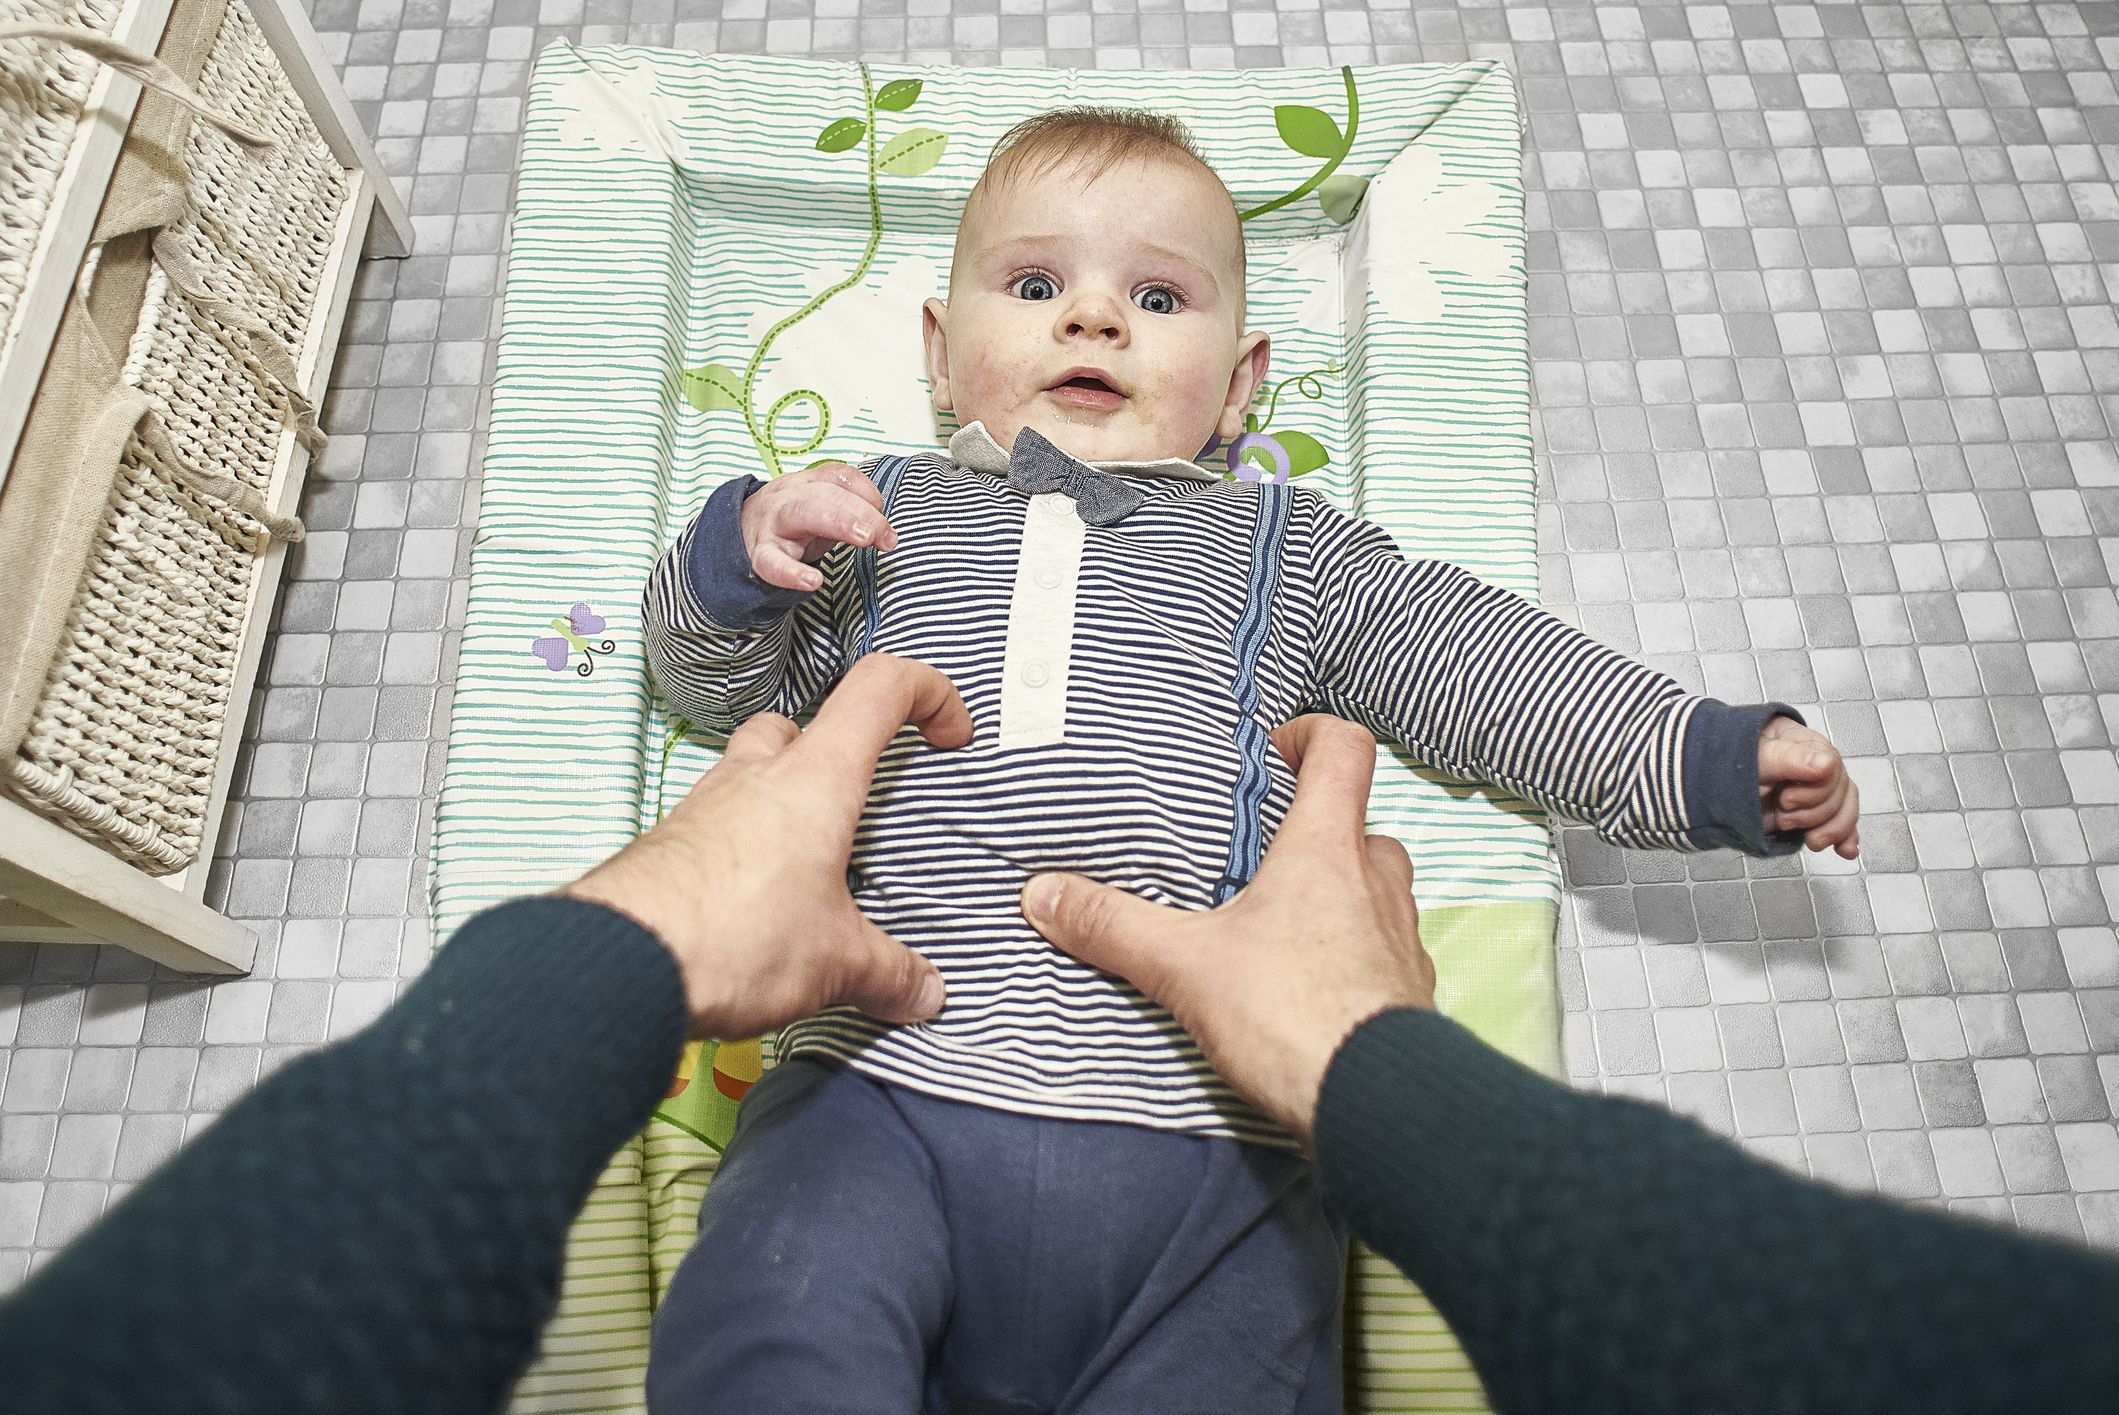 POV of child on a changing mat